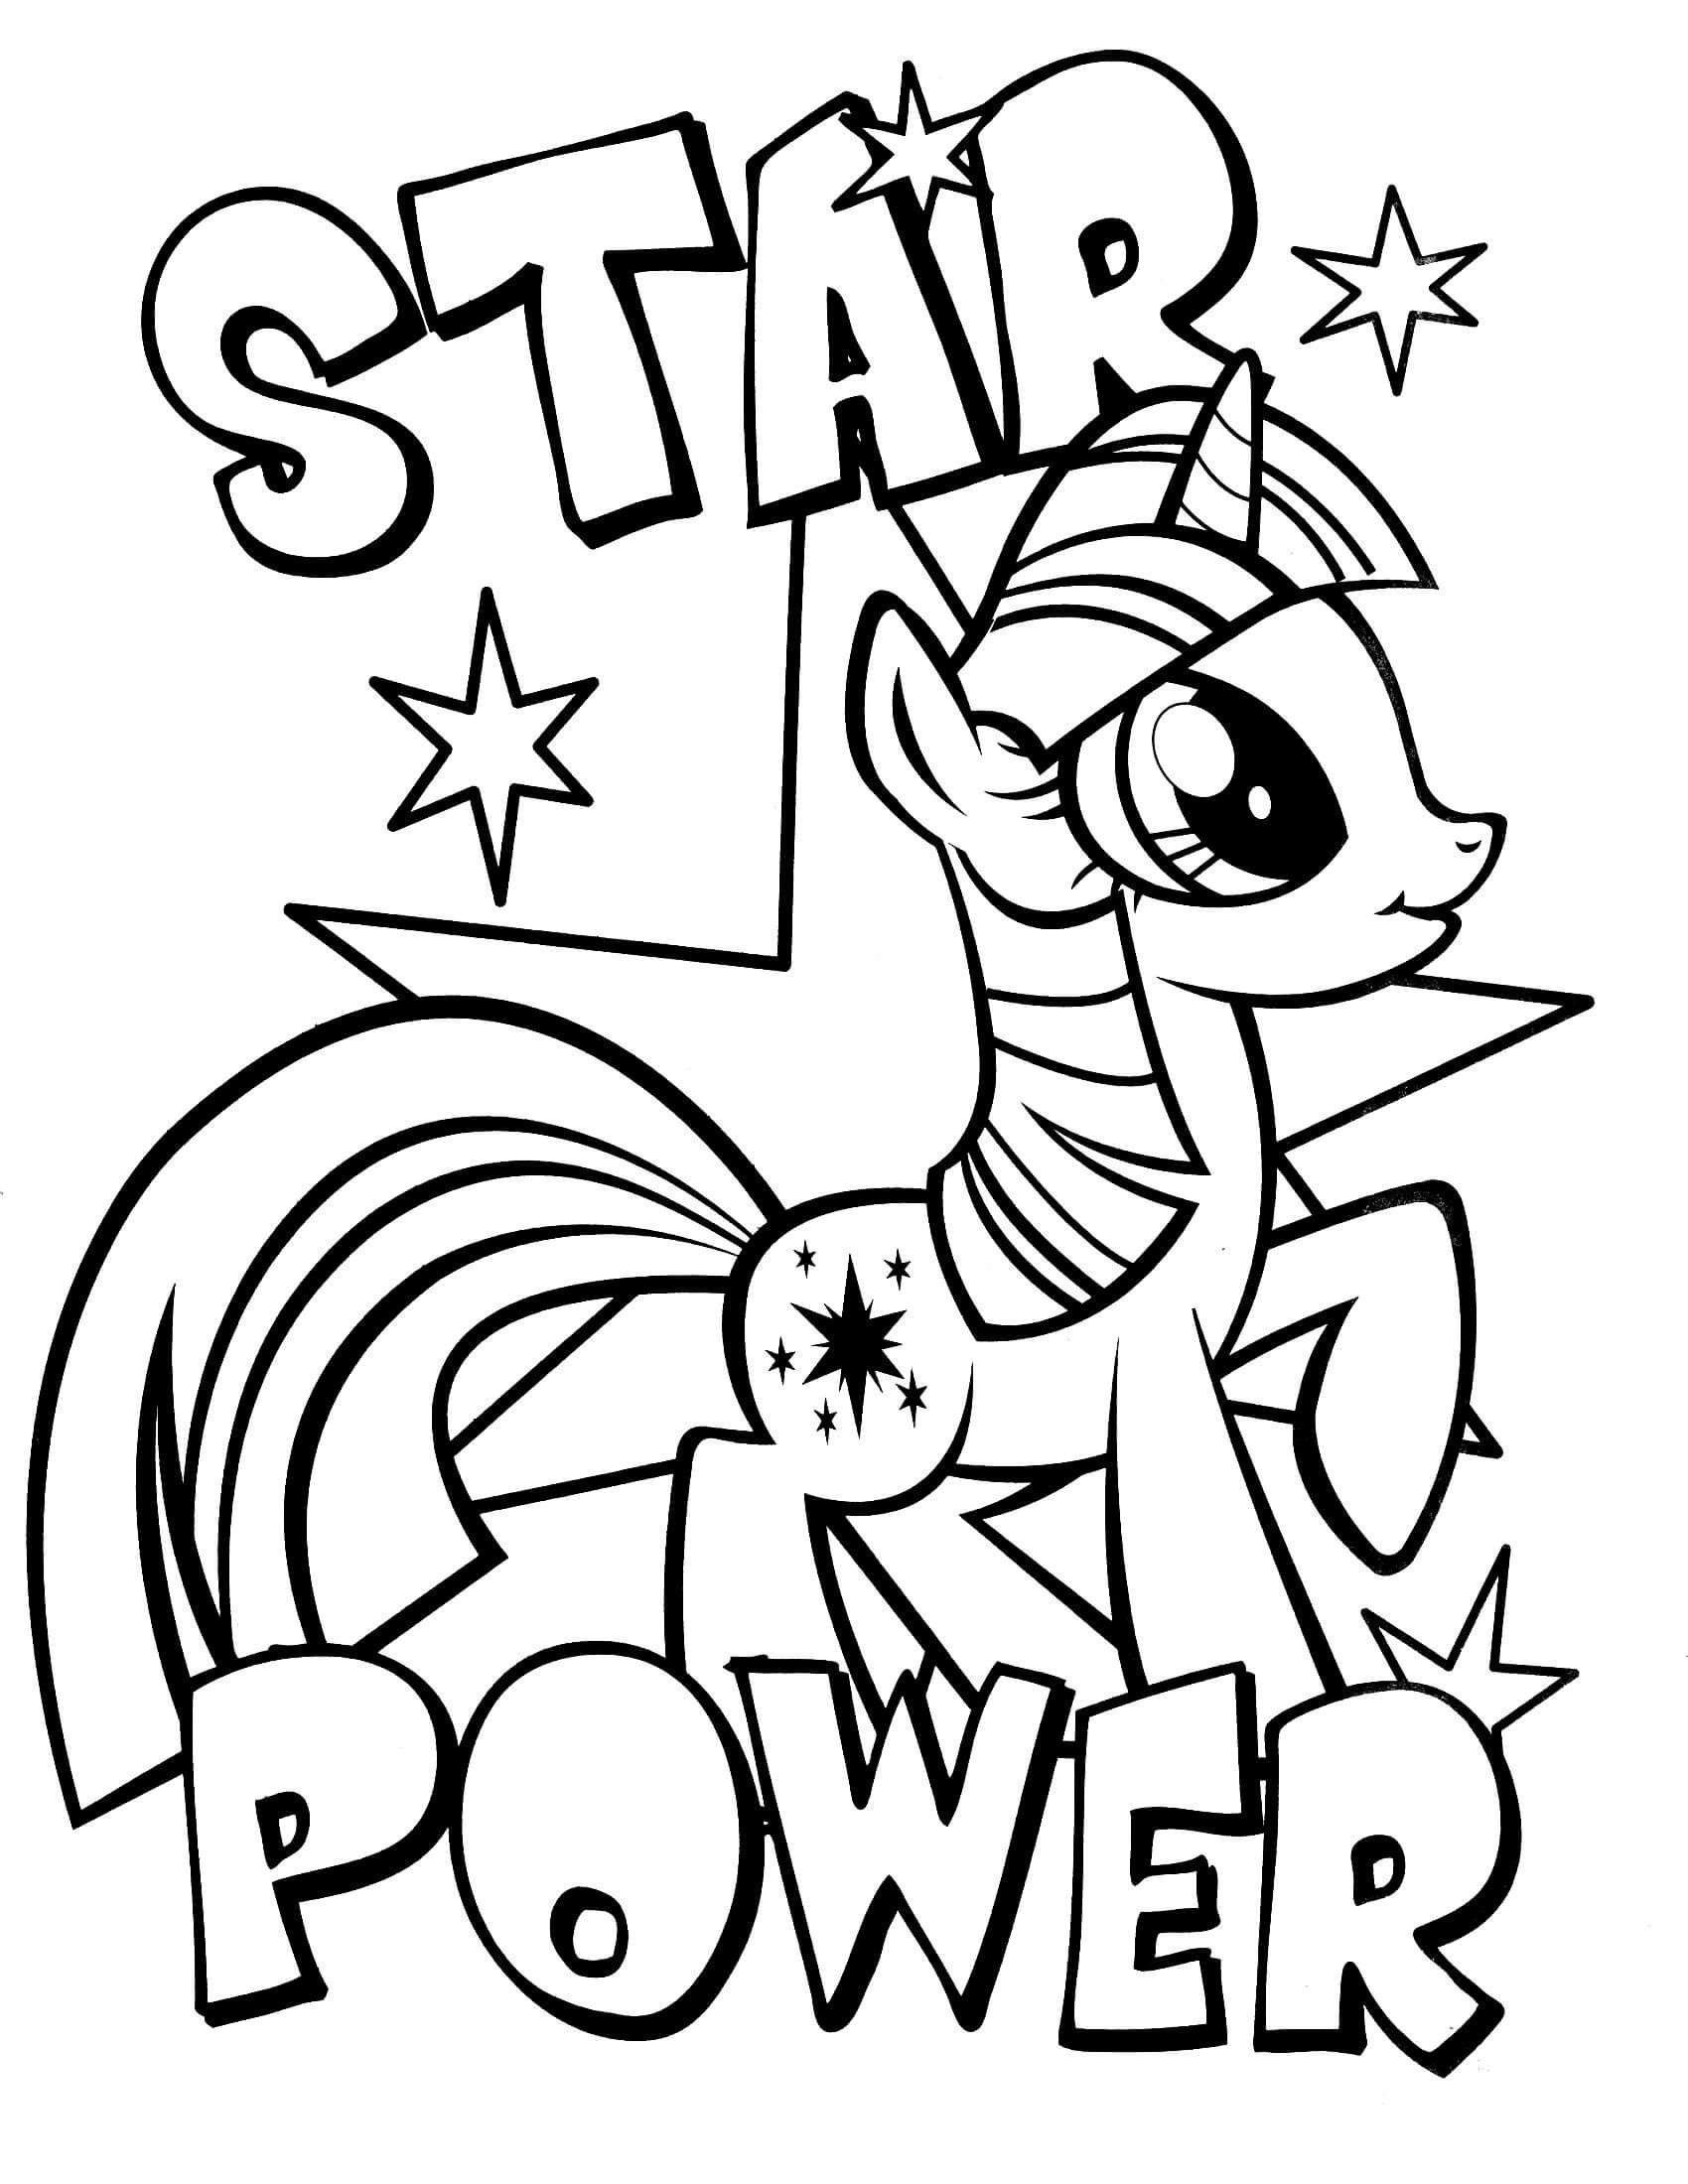 Mlp Print Worksheets Printable Worksheets And Activities For Teachers Parents Tutors And Homeschool Families